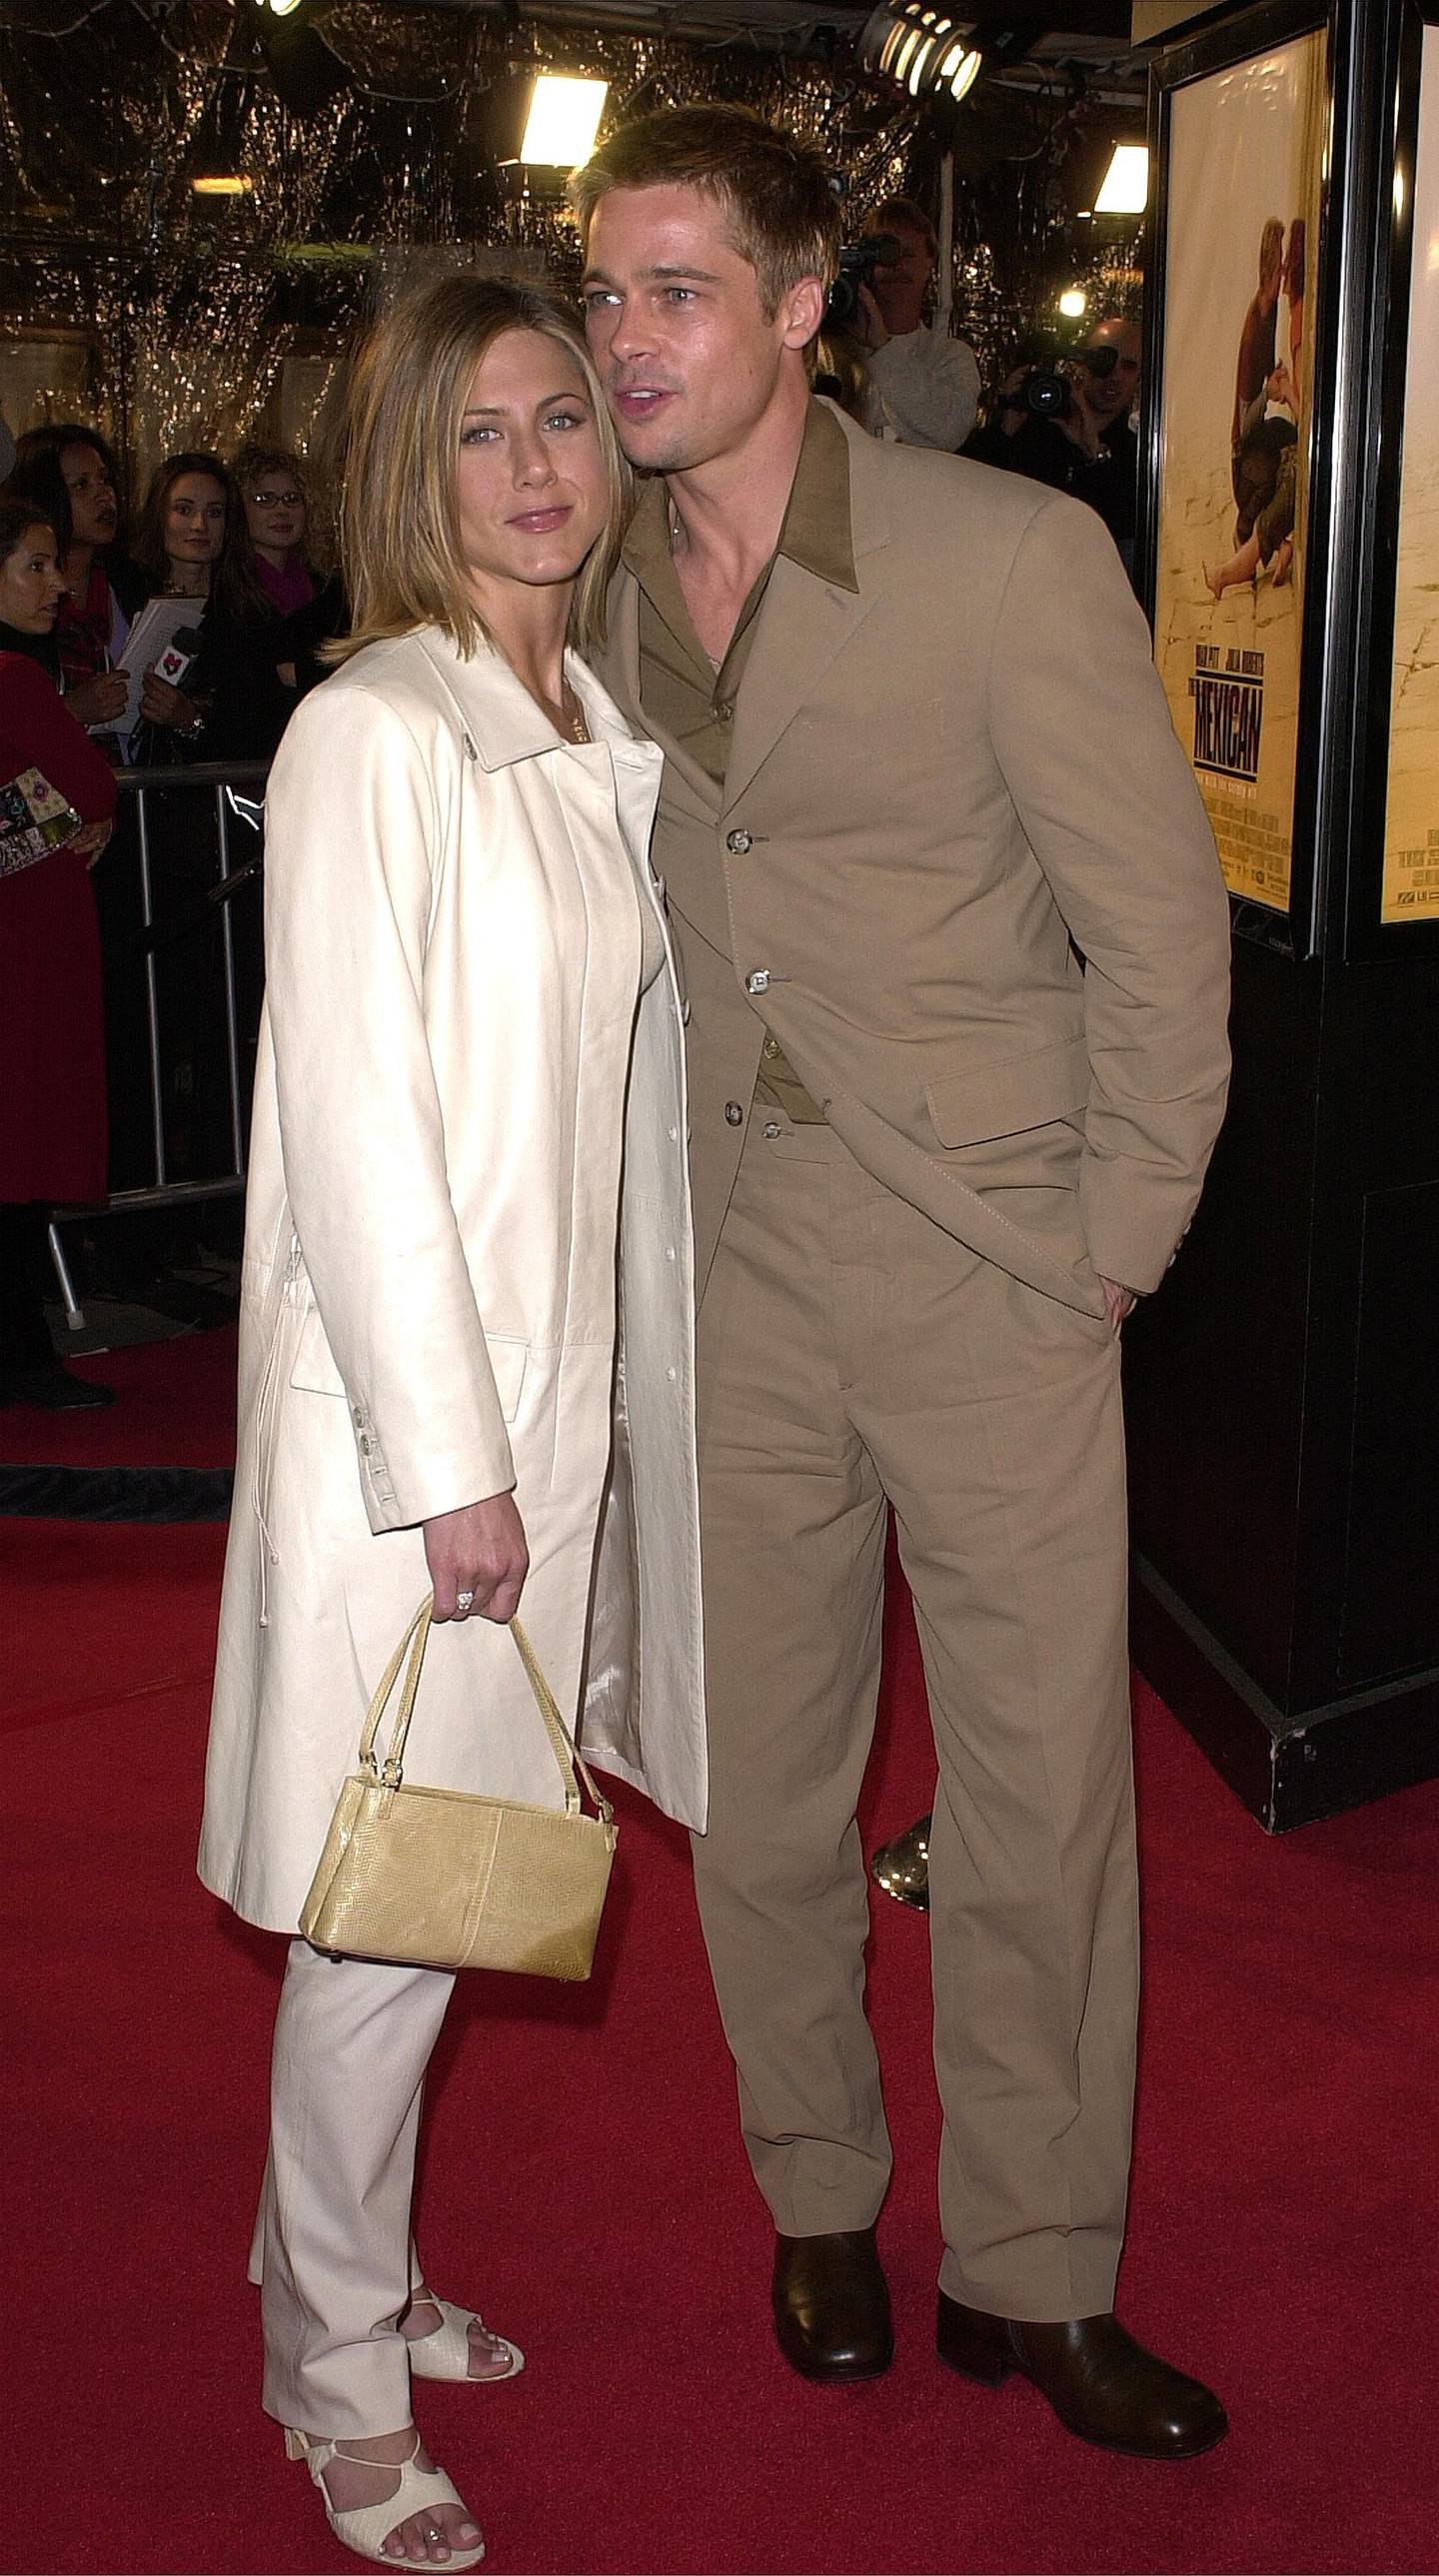 """385802 20: Actors Brad Pitt and wife Jennifer Aniston arrive for the premiere of """"The Mexican"""" February 23, 2001 in Westwood, CA. (Photo by Vince Bucci/Newsmakers)"""